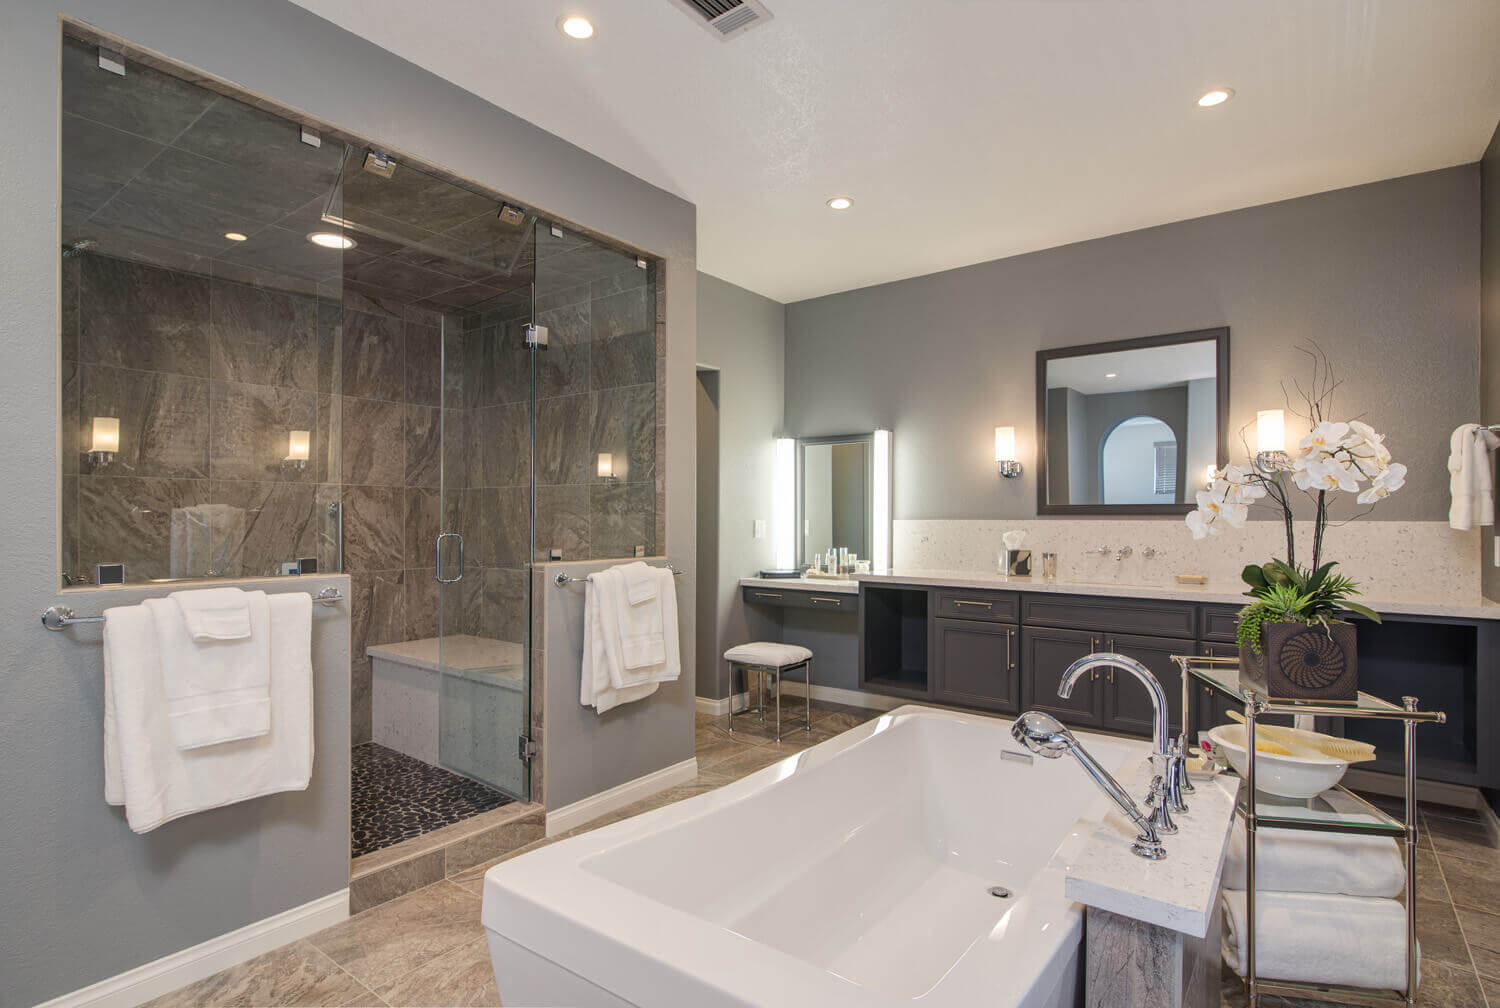 2018 Bathroom Renovation Cost